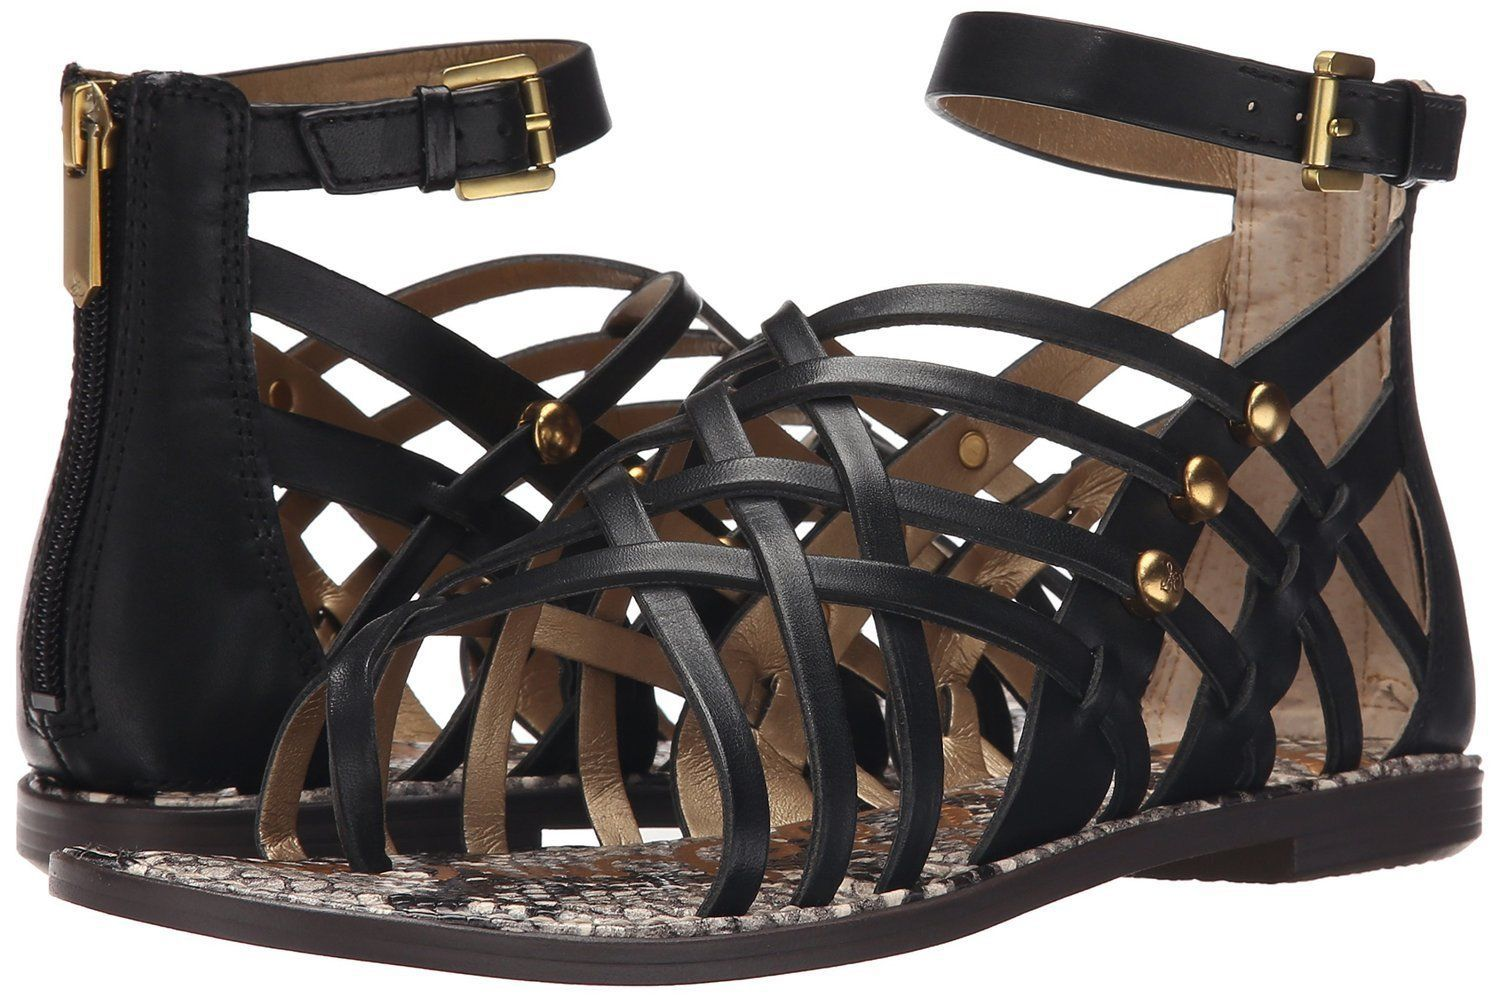 Primary image for Sam Edelman Gardener Gladiator Sandal, Sizes 5-9.5 Black Leather E2533L3001